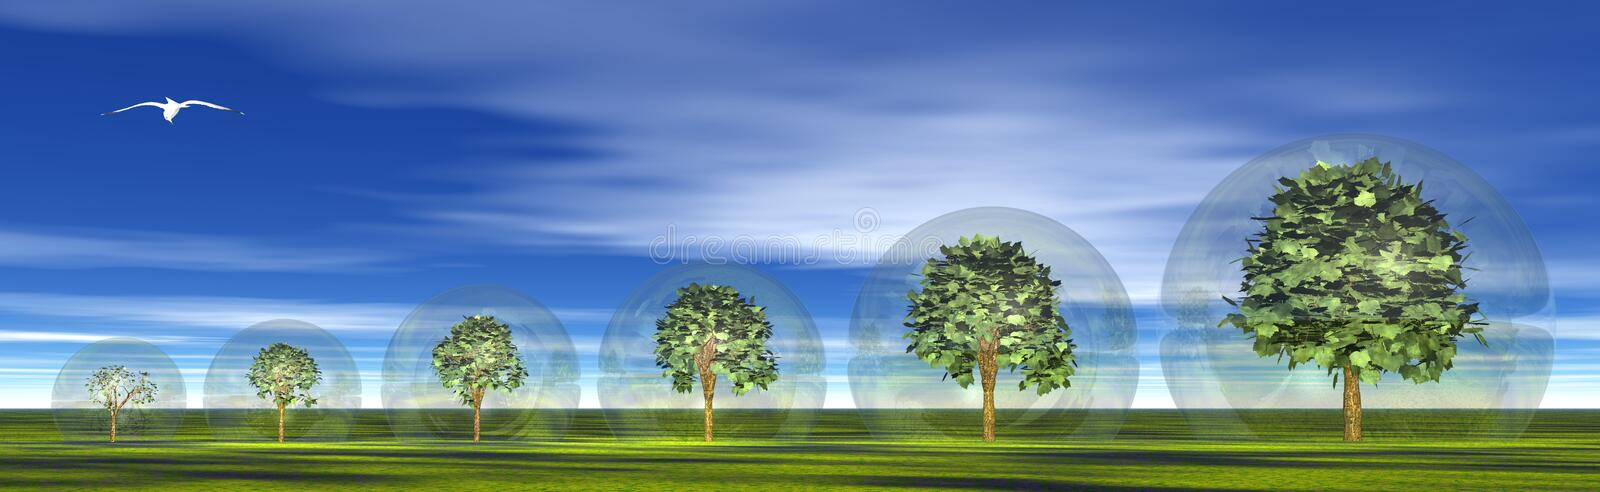 Protected growing trees stock illustration